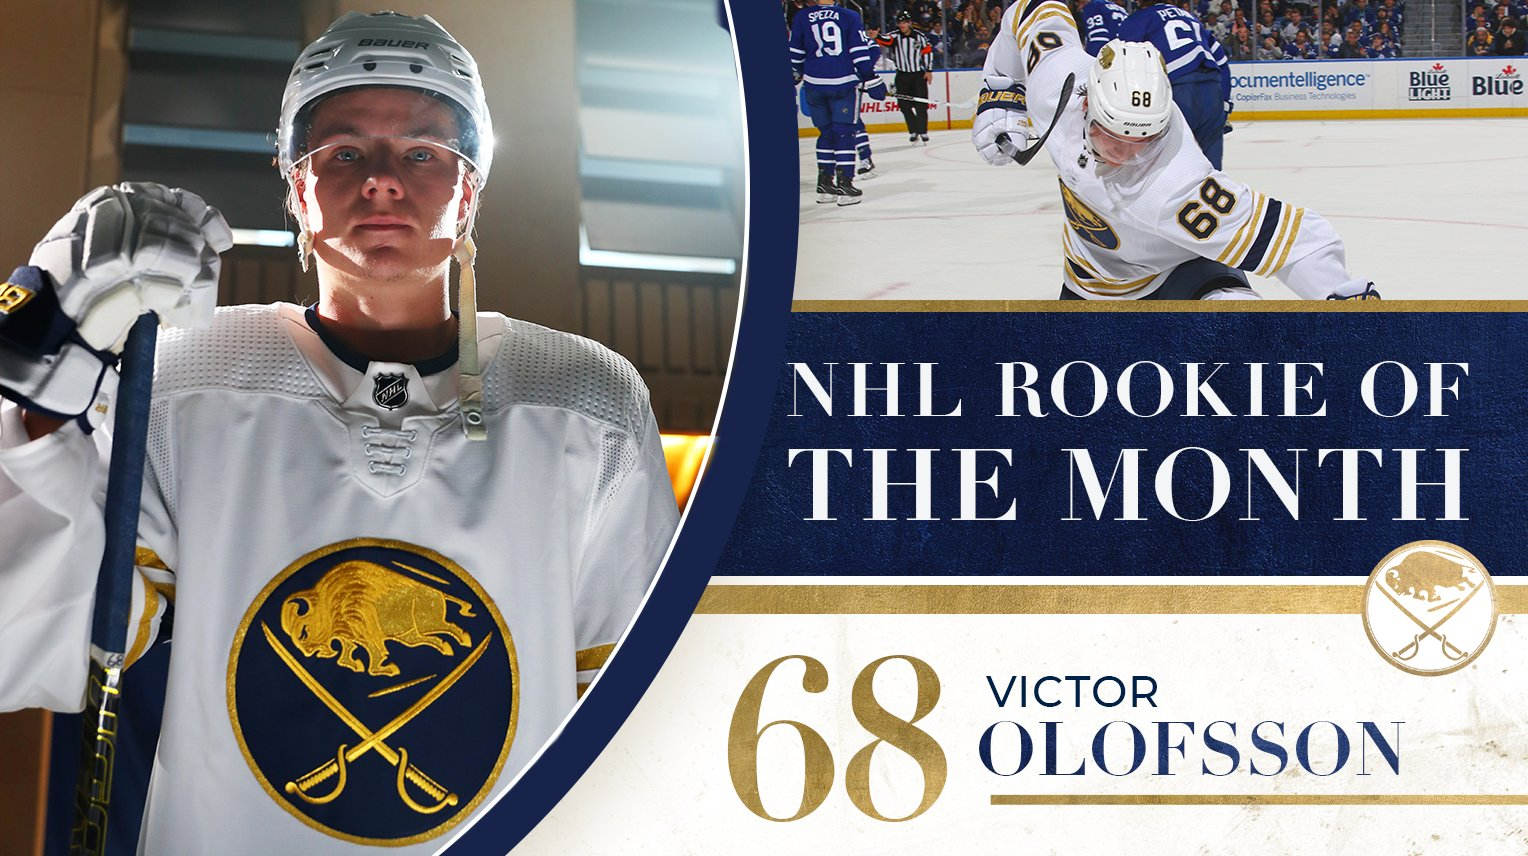 Victor Olofsson named Rookie of the Month for December